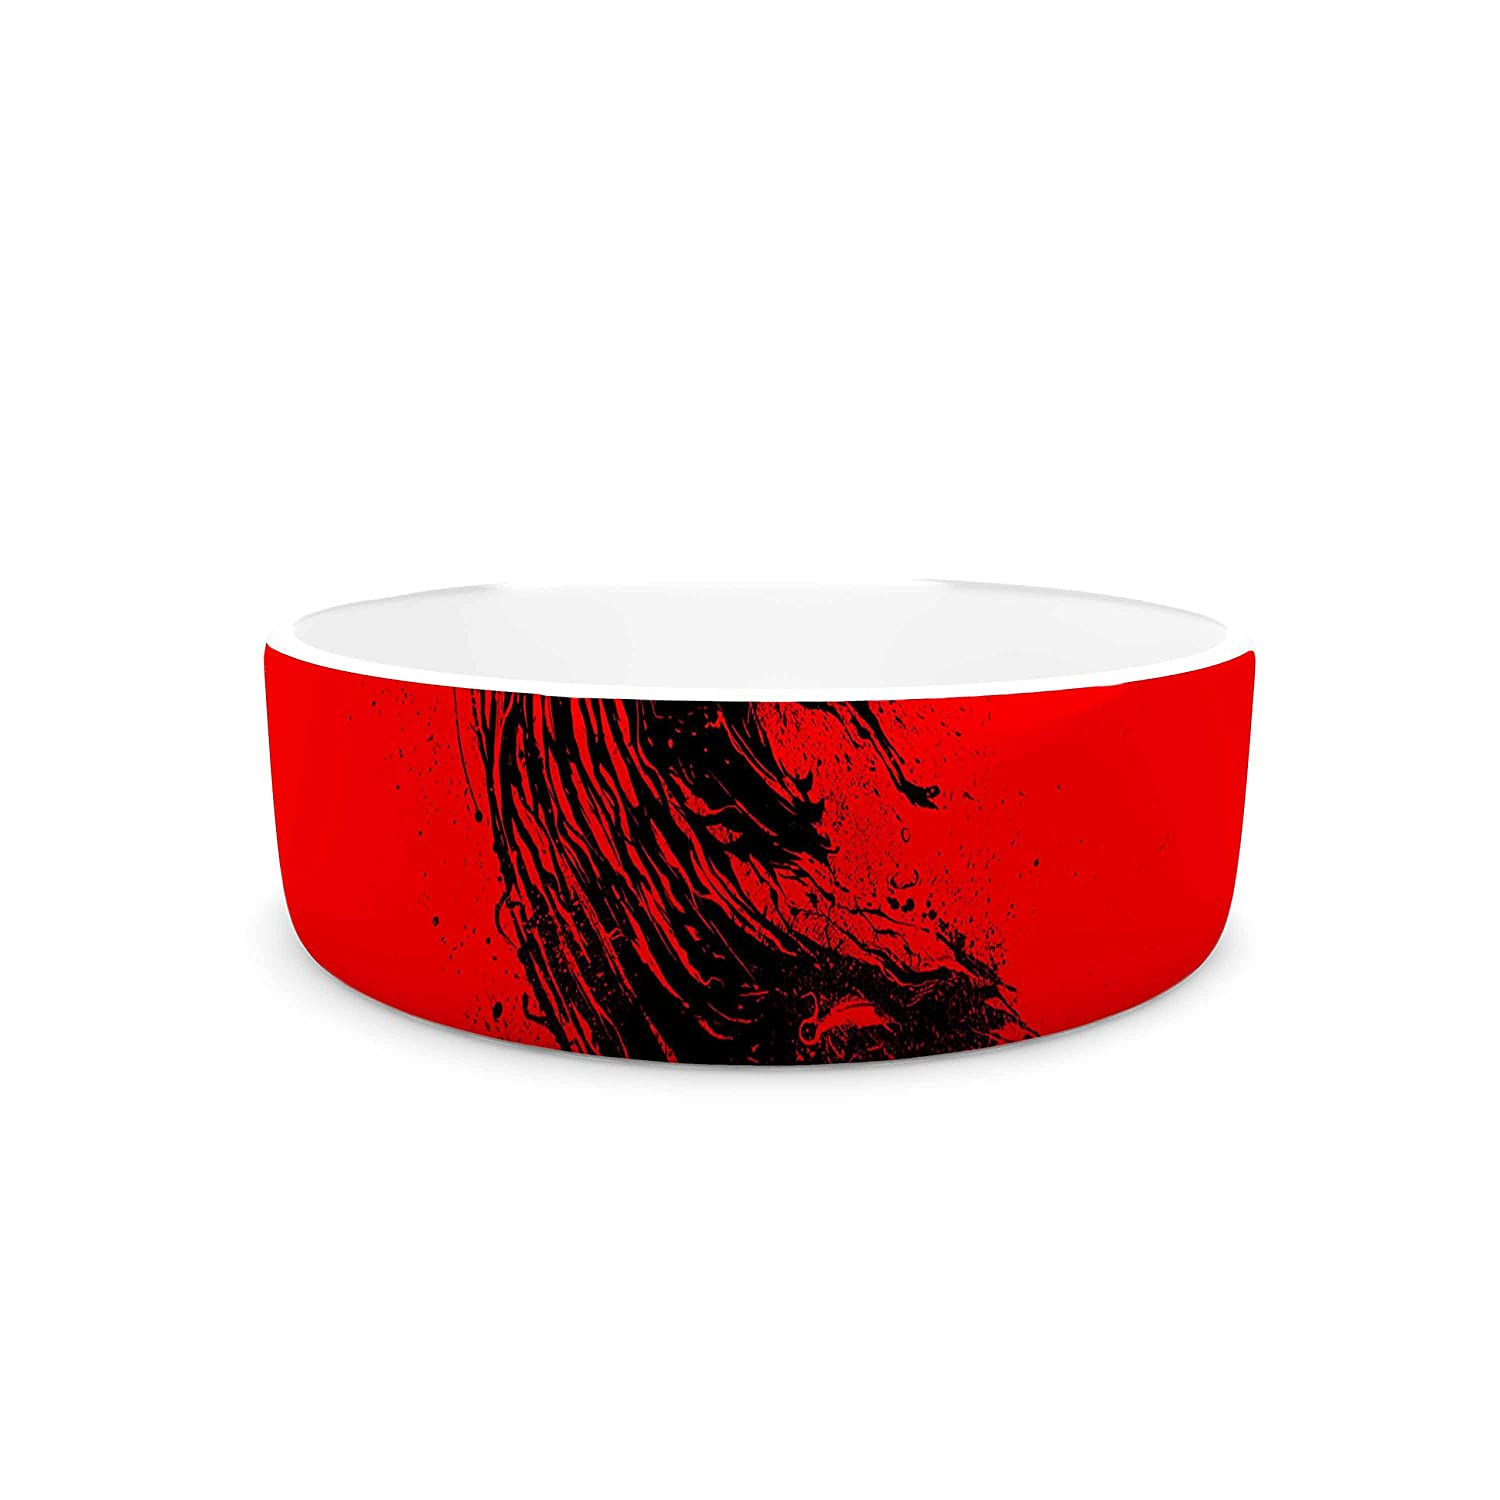 7\ KESS InHouse Barmalisirtb Came from Hell  Red Digital Pet Bowl, 7